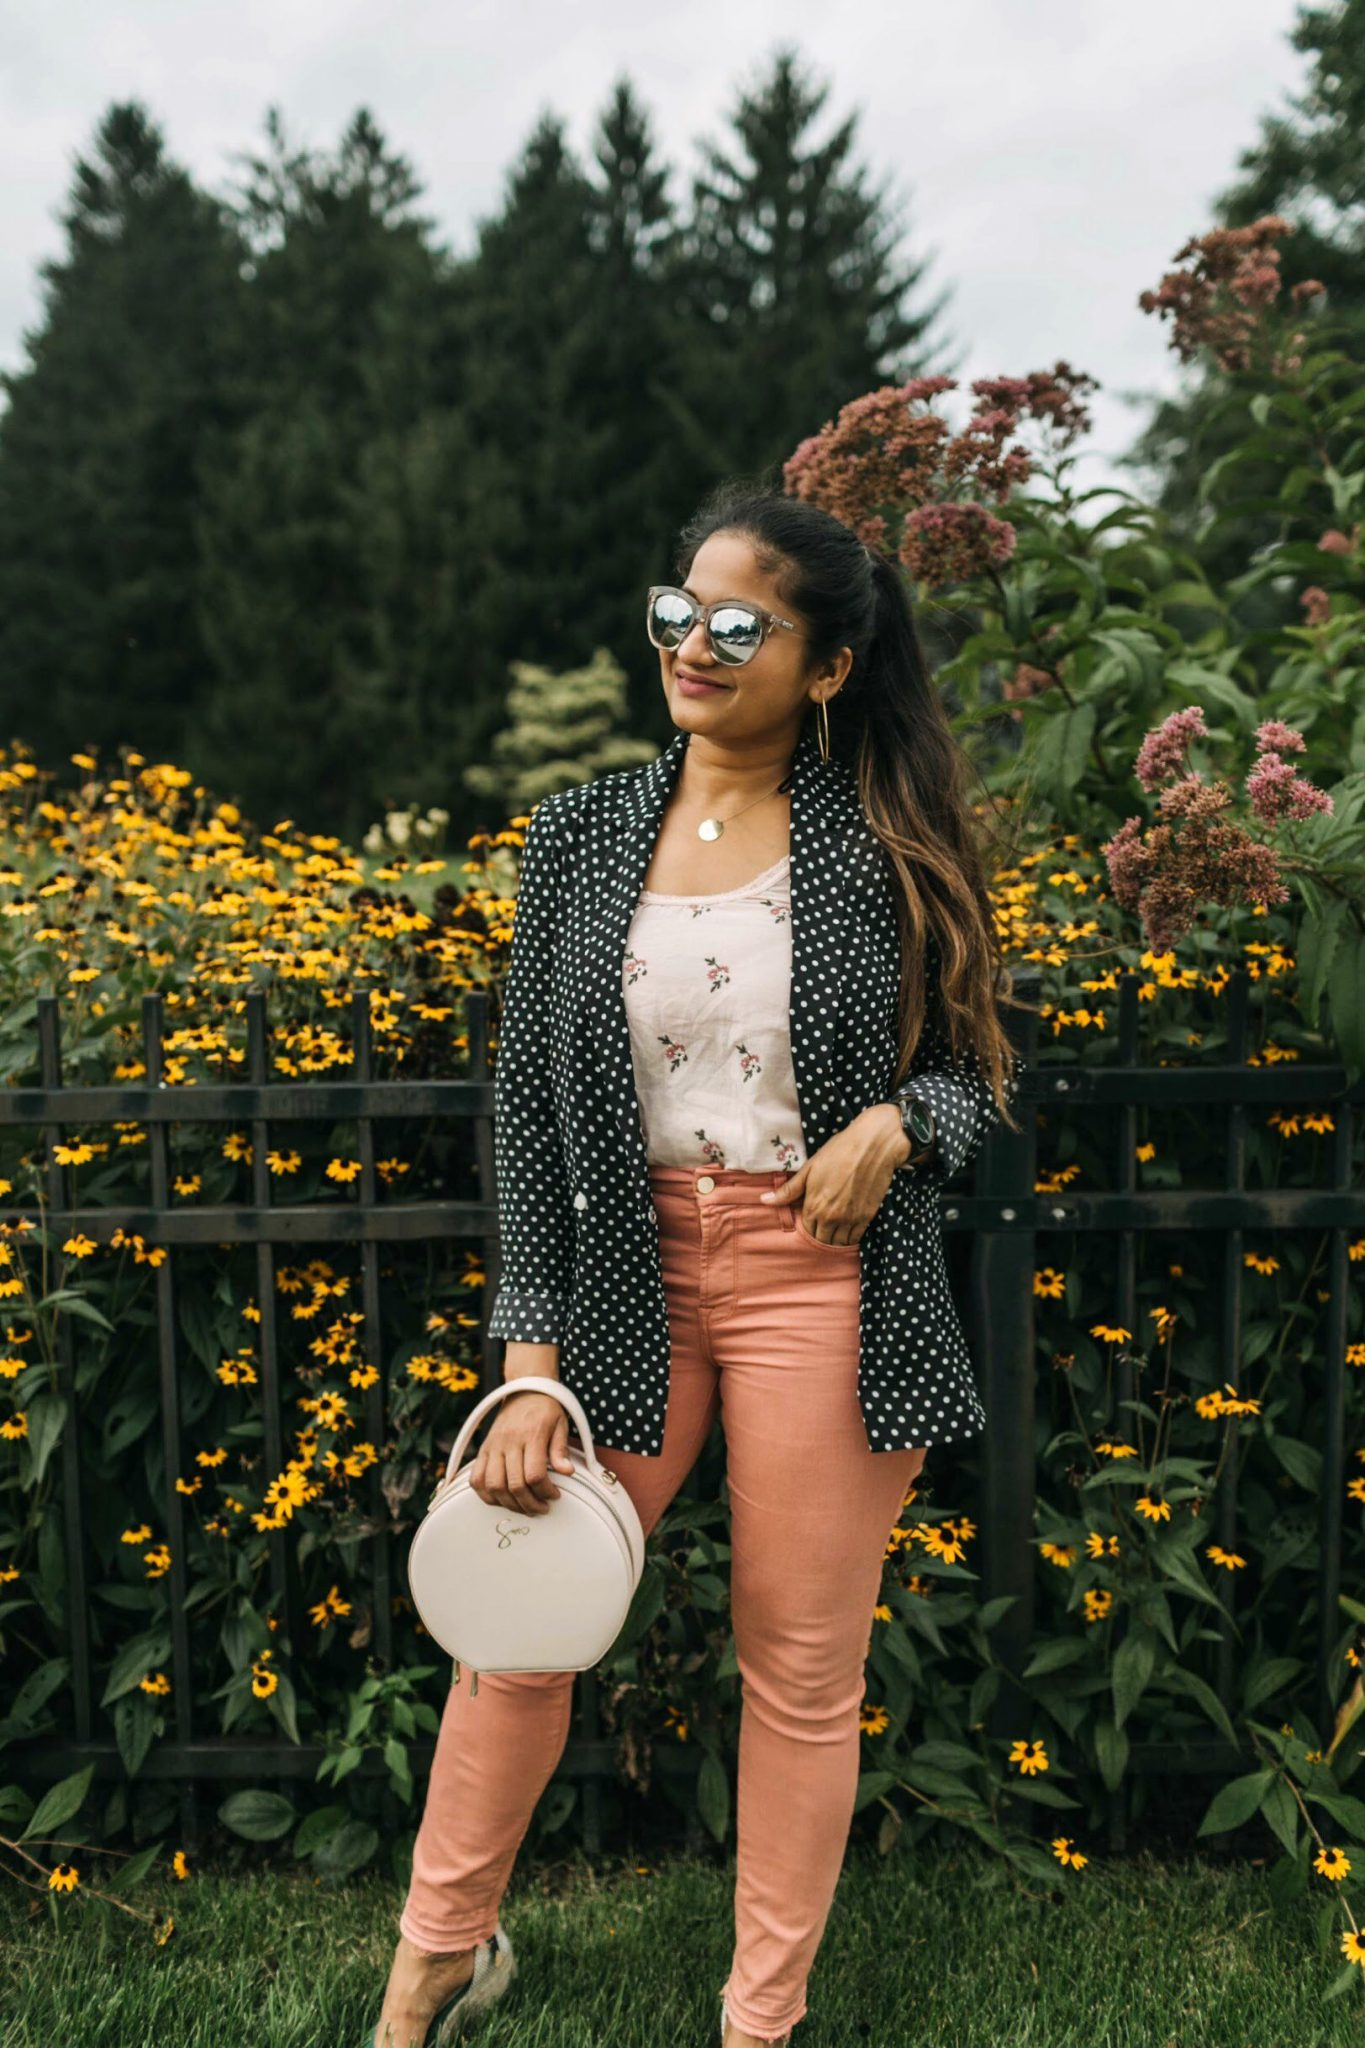 wearing Jen7 Release Hem Colored Ankle Skinny Jeans in pink 5 | Jen7 Pink jeans featured by popular US modest fashion blogger, Dreaming Loud